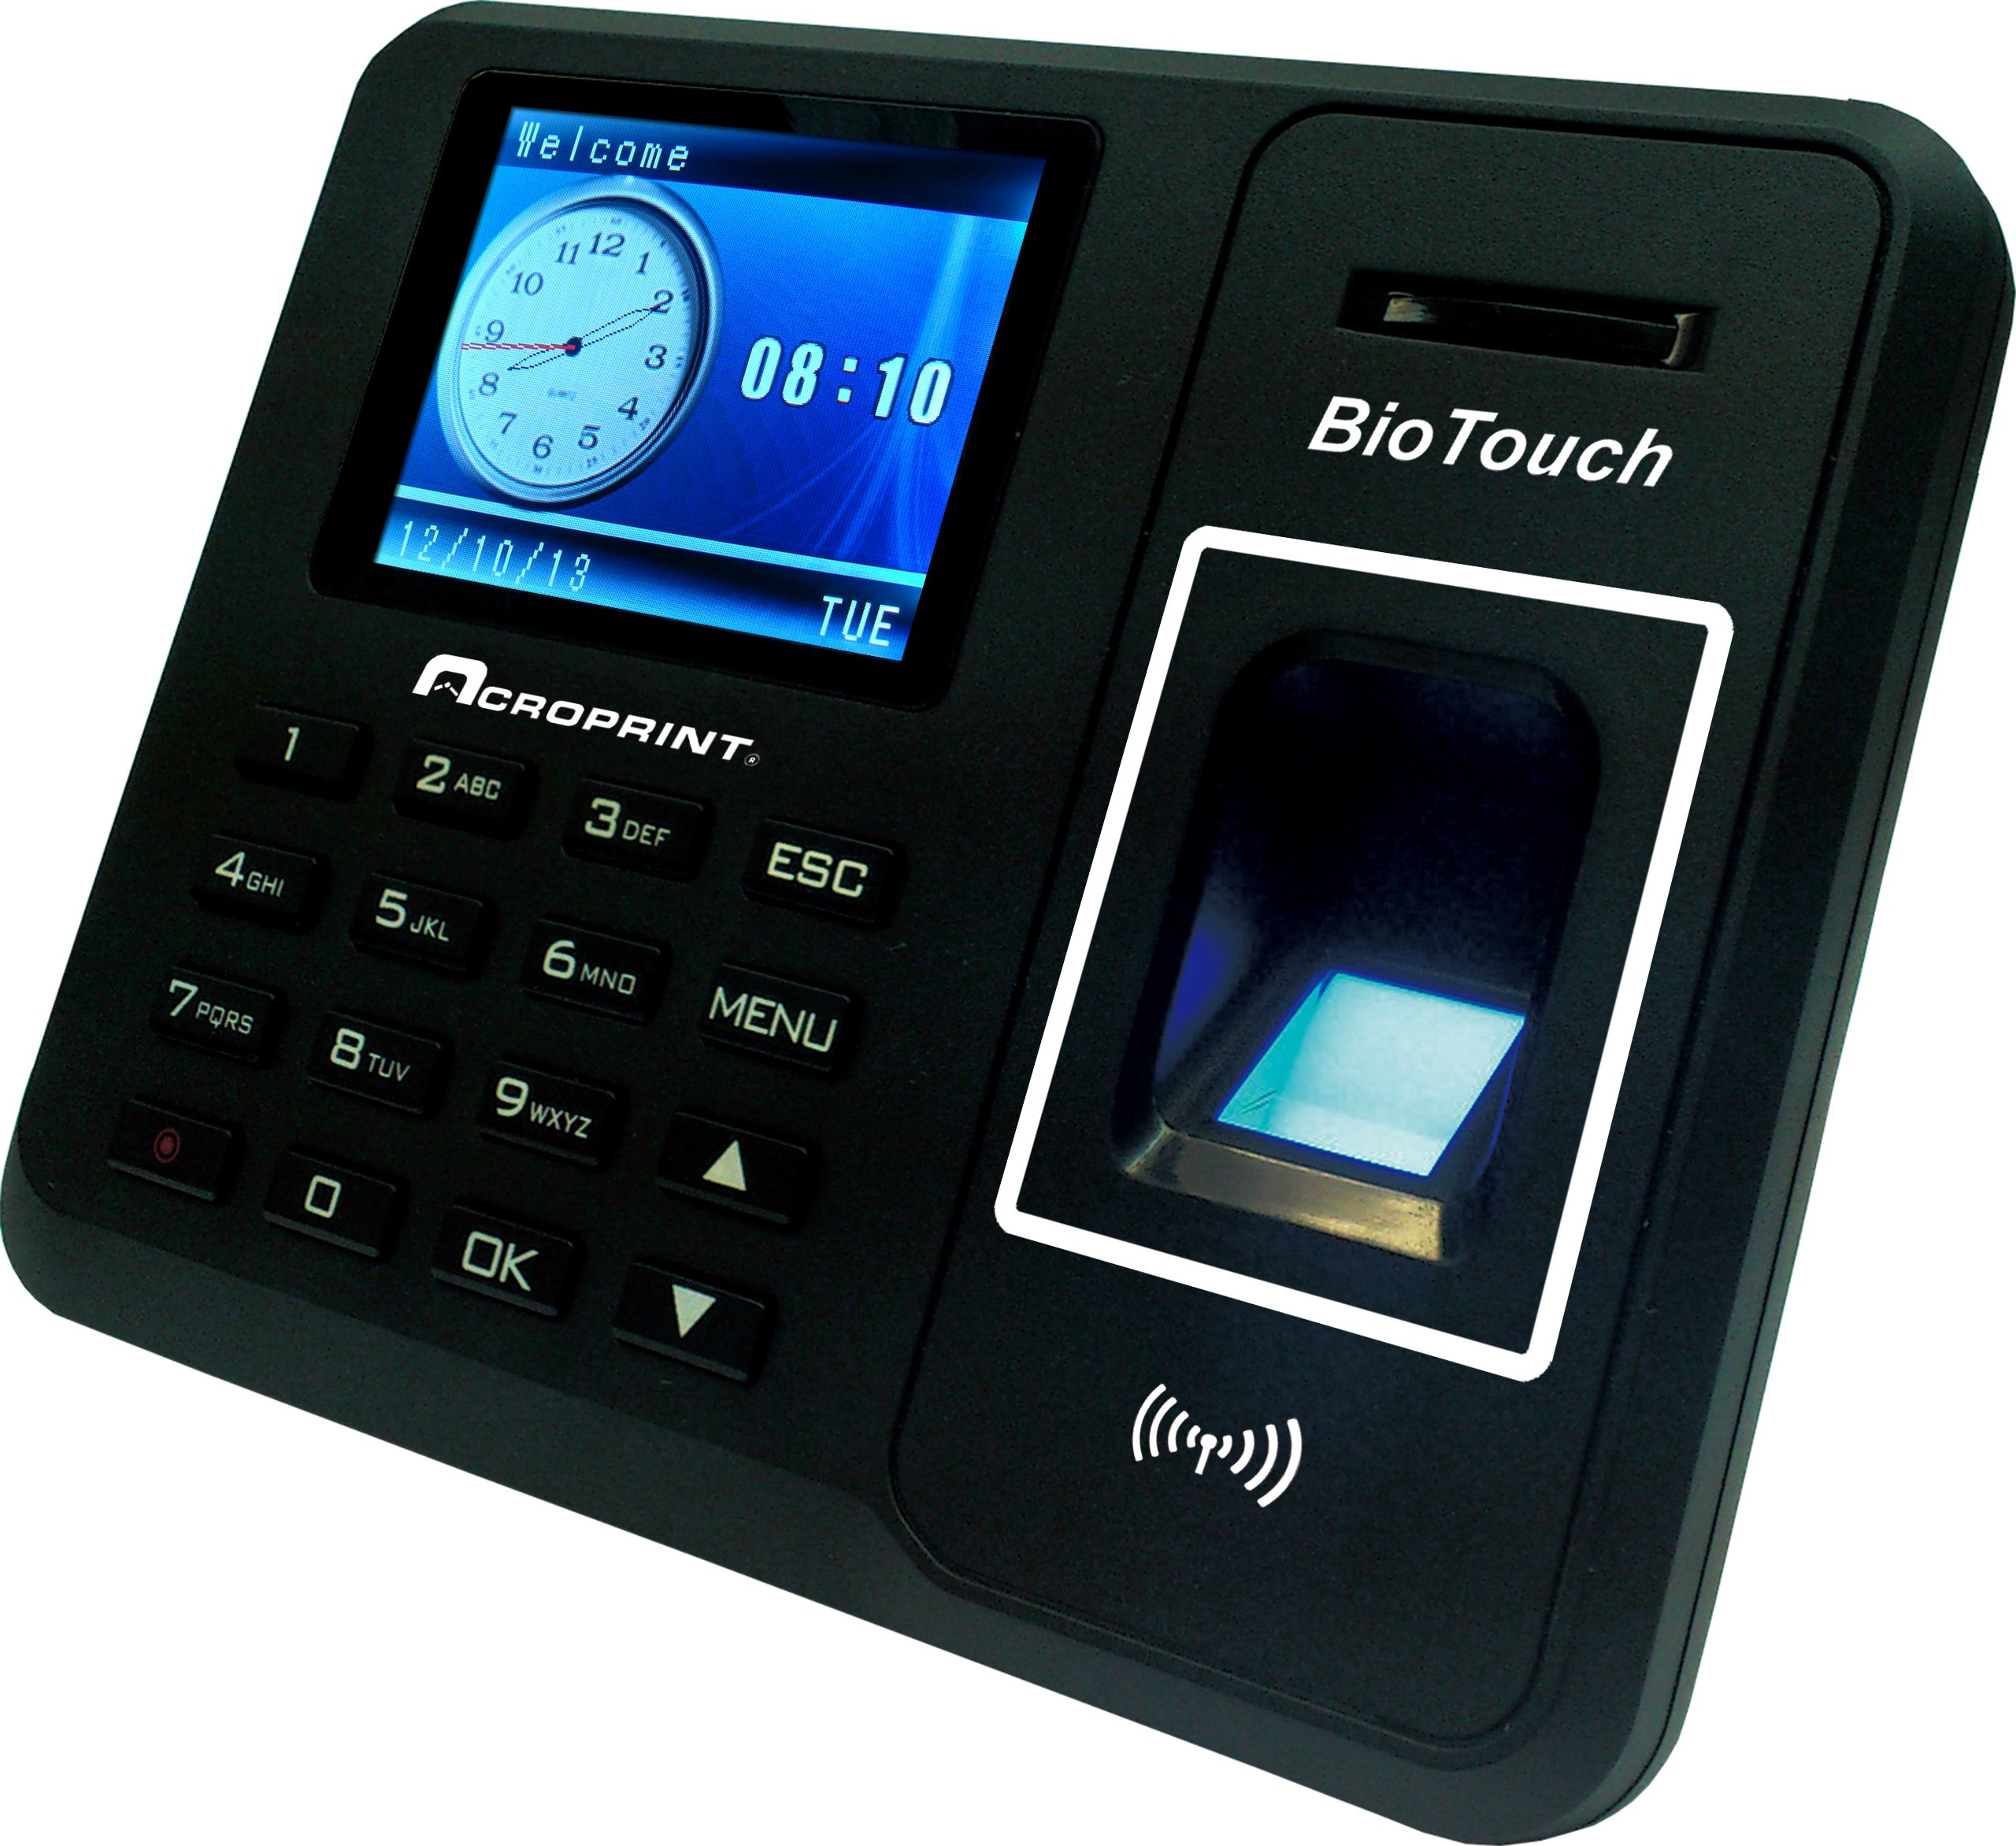 Acroprint BioTouch Self-Contained Automatic Biometric Fingerprint/Proximity Time Clock by Acroprint